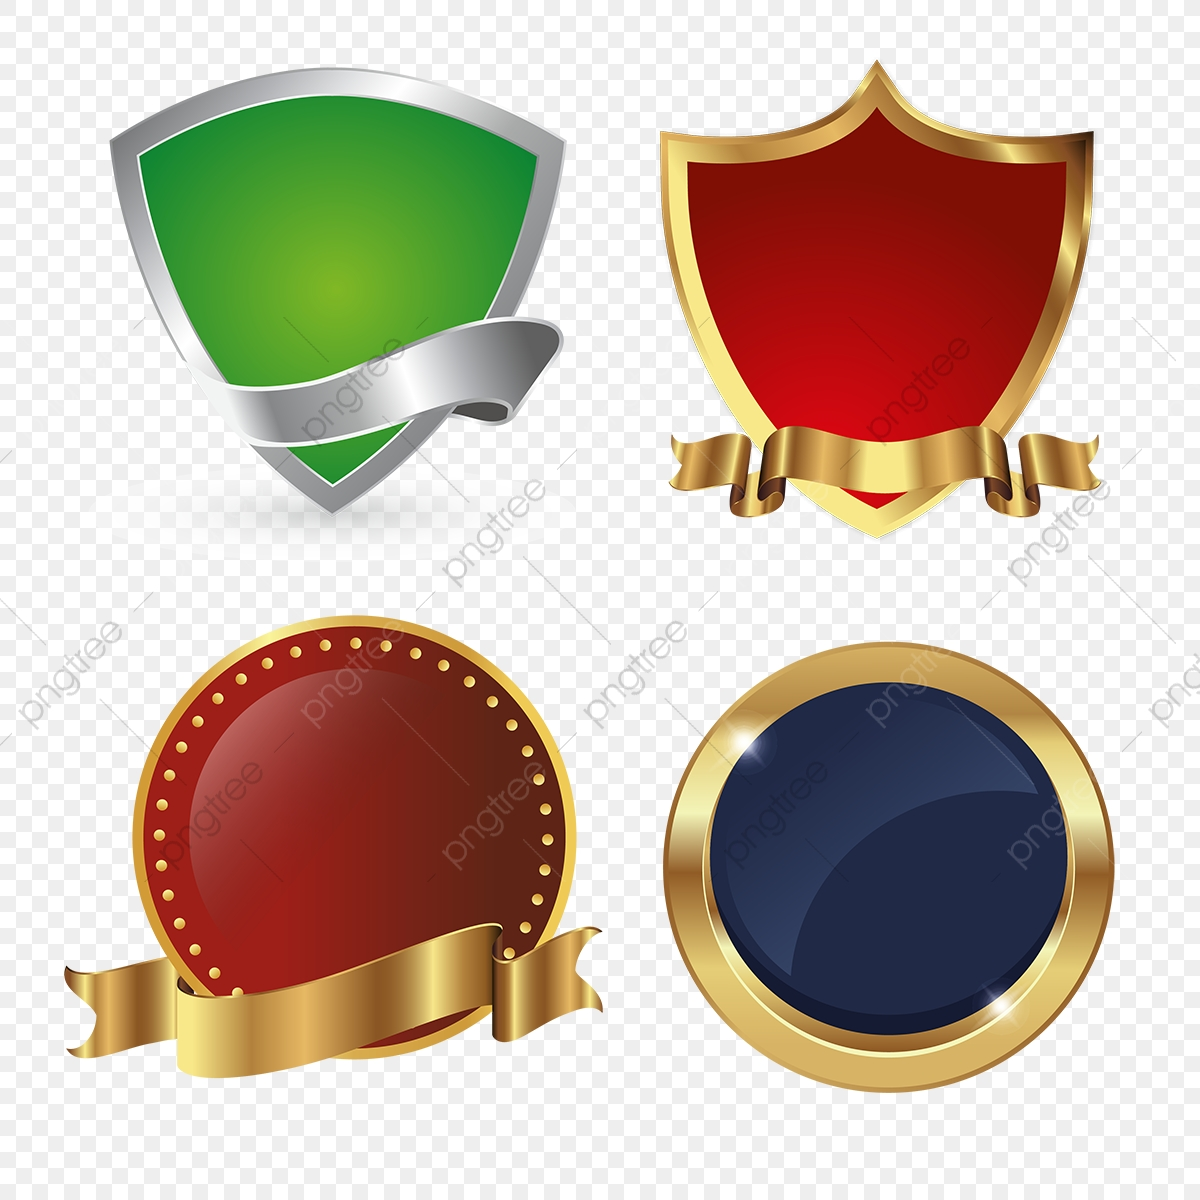 golden shields logo ic u00f4ne badges collection bouclier vecteur ic u00f4ne png et vecteur pour